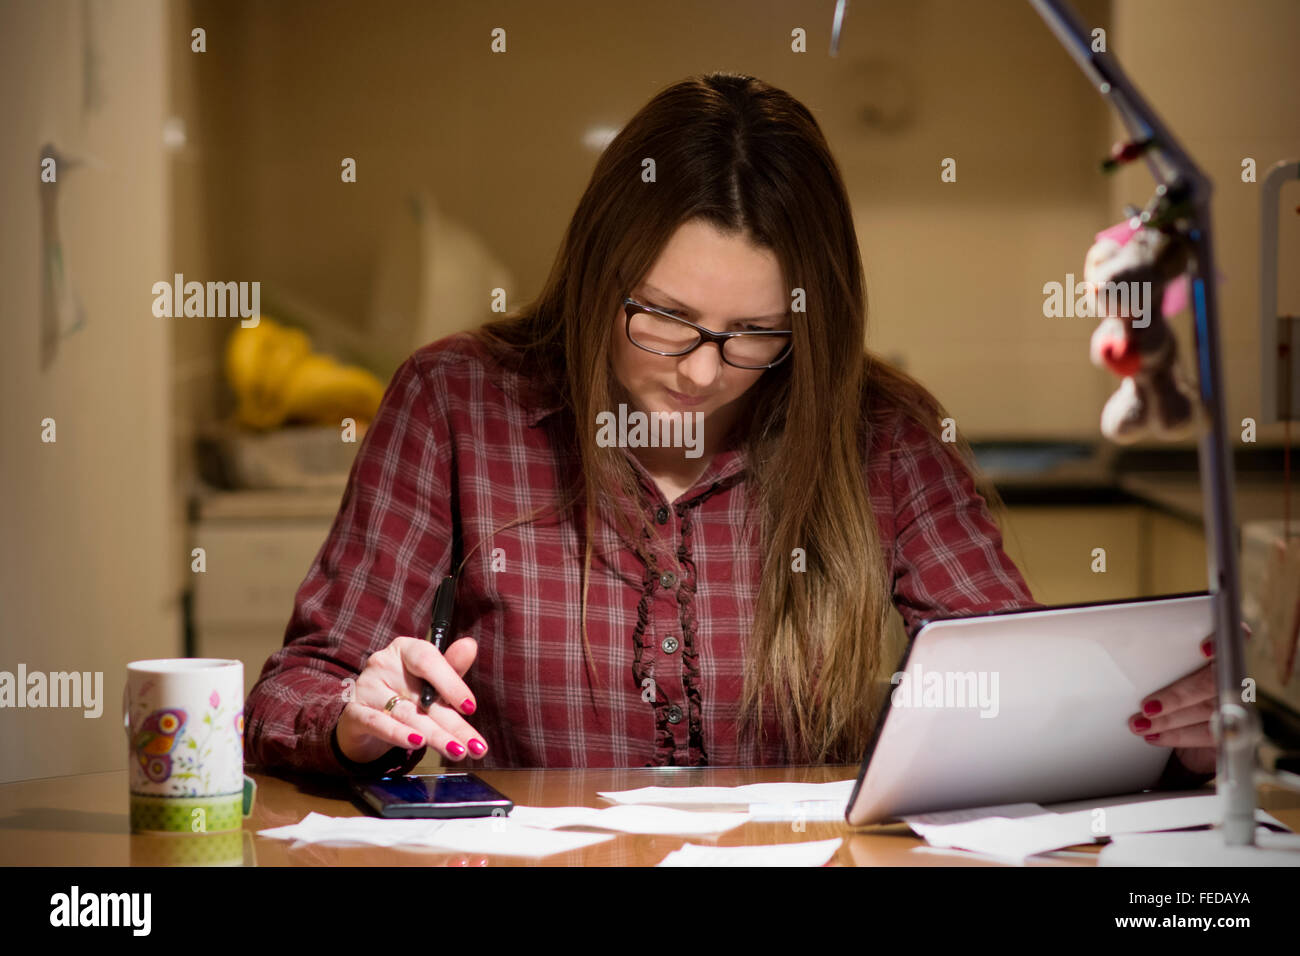 Young housewife paying bills online late in the evening after finishing all her house work, sitting at the desk - Stock Image